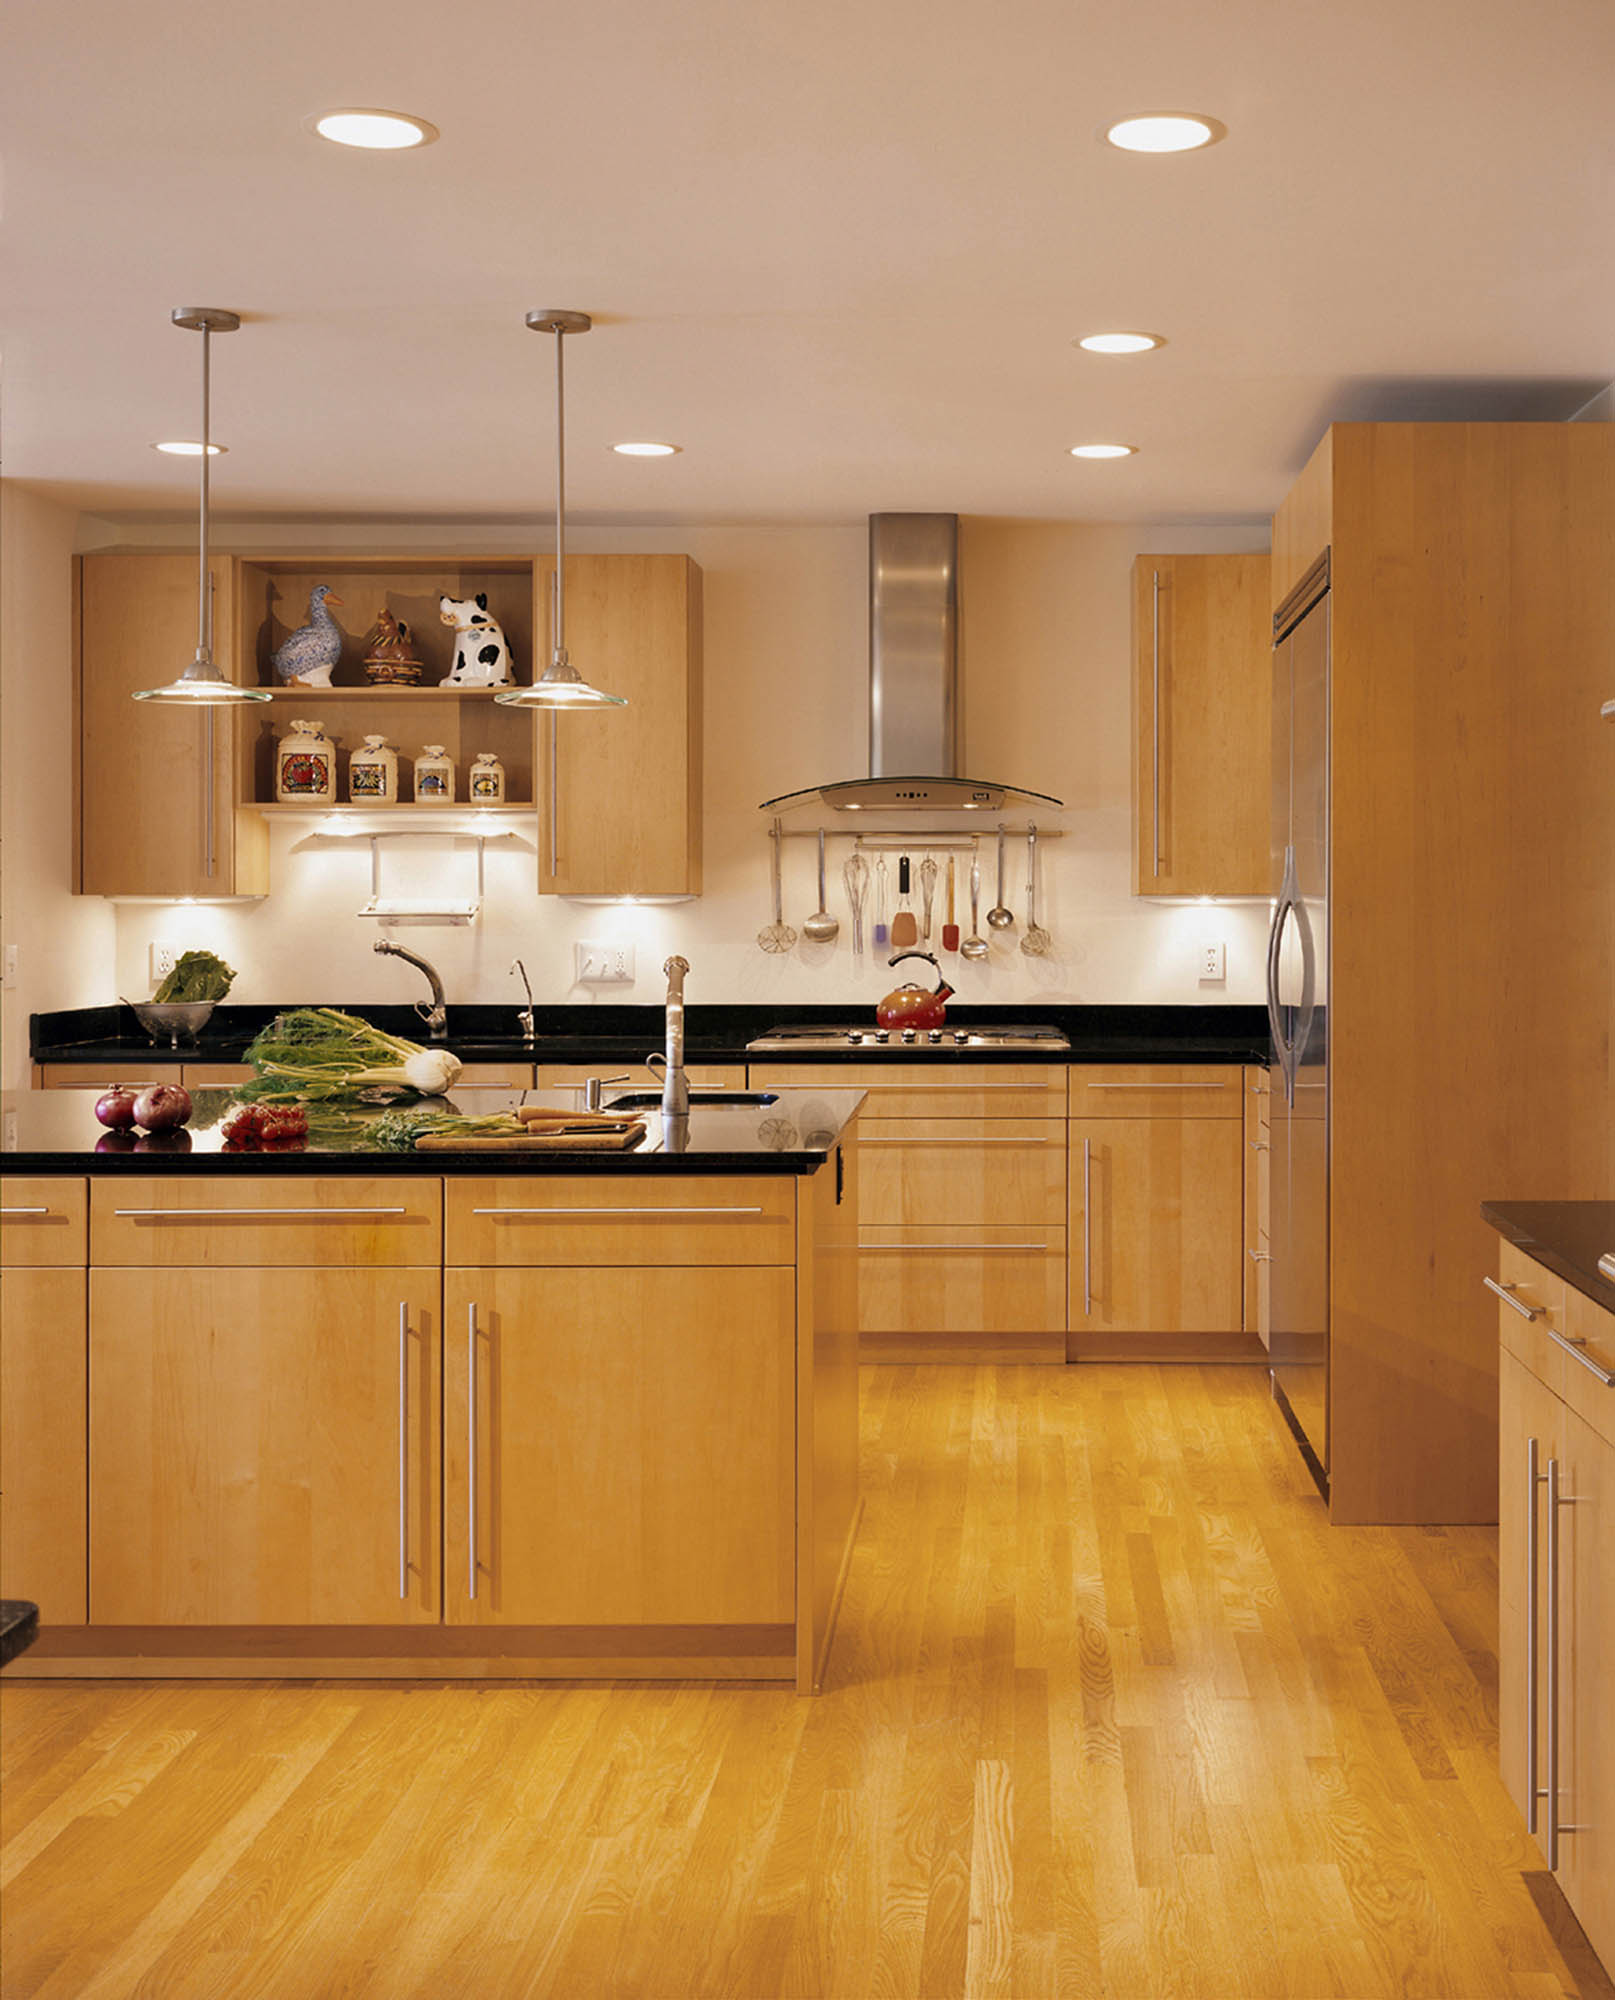 All About Cabinets And Countertops: All In Good Taste